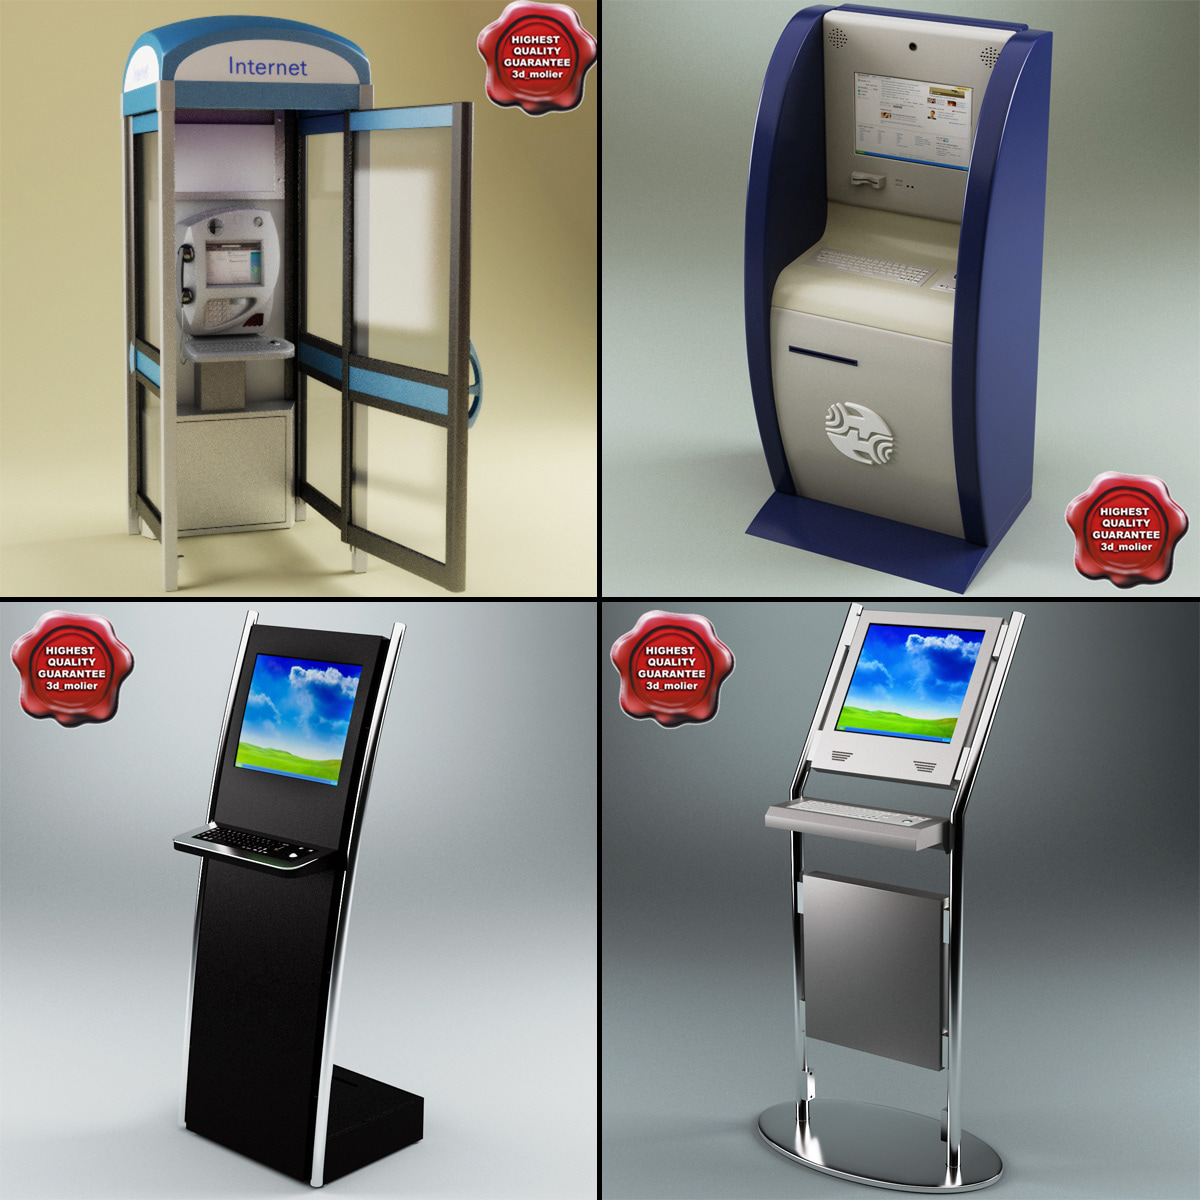 Internet_Kiosks_Collection_00.jpg